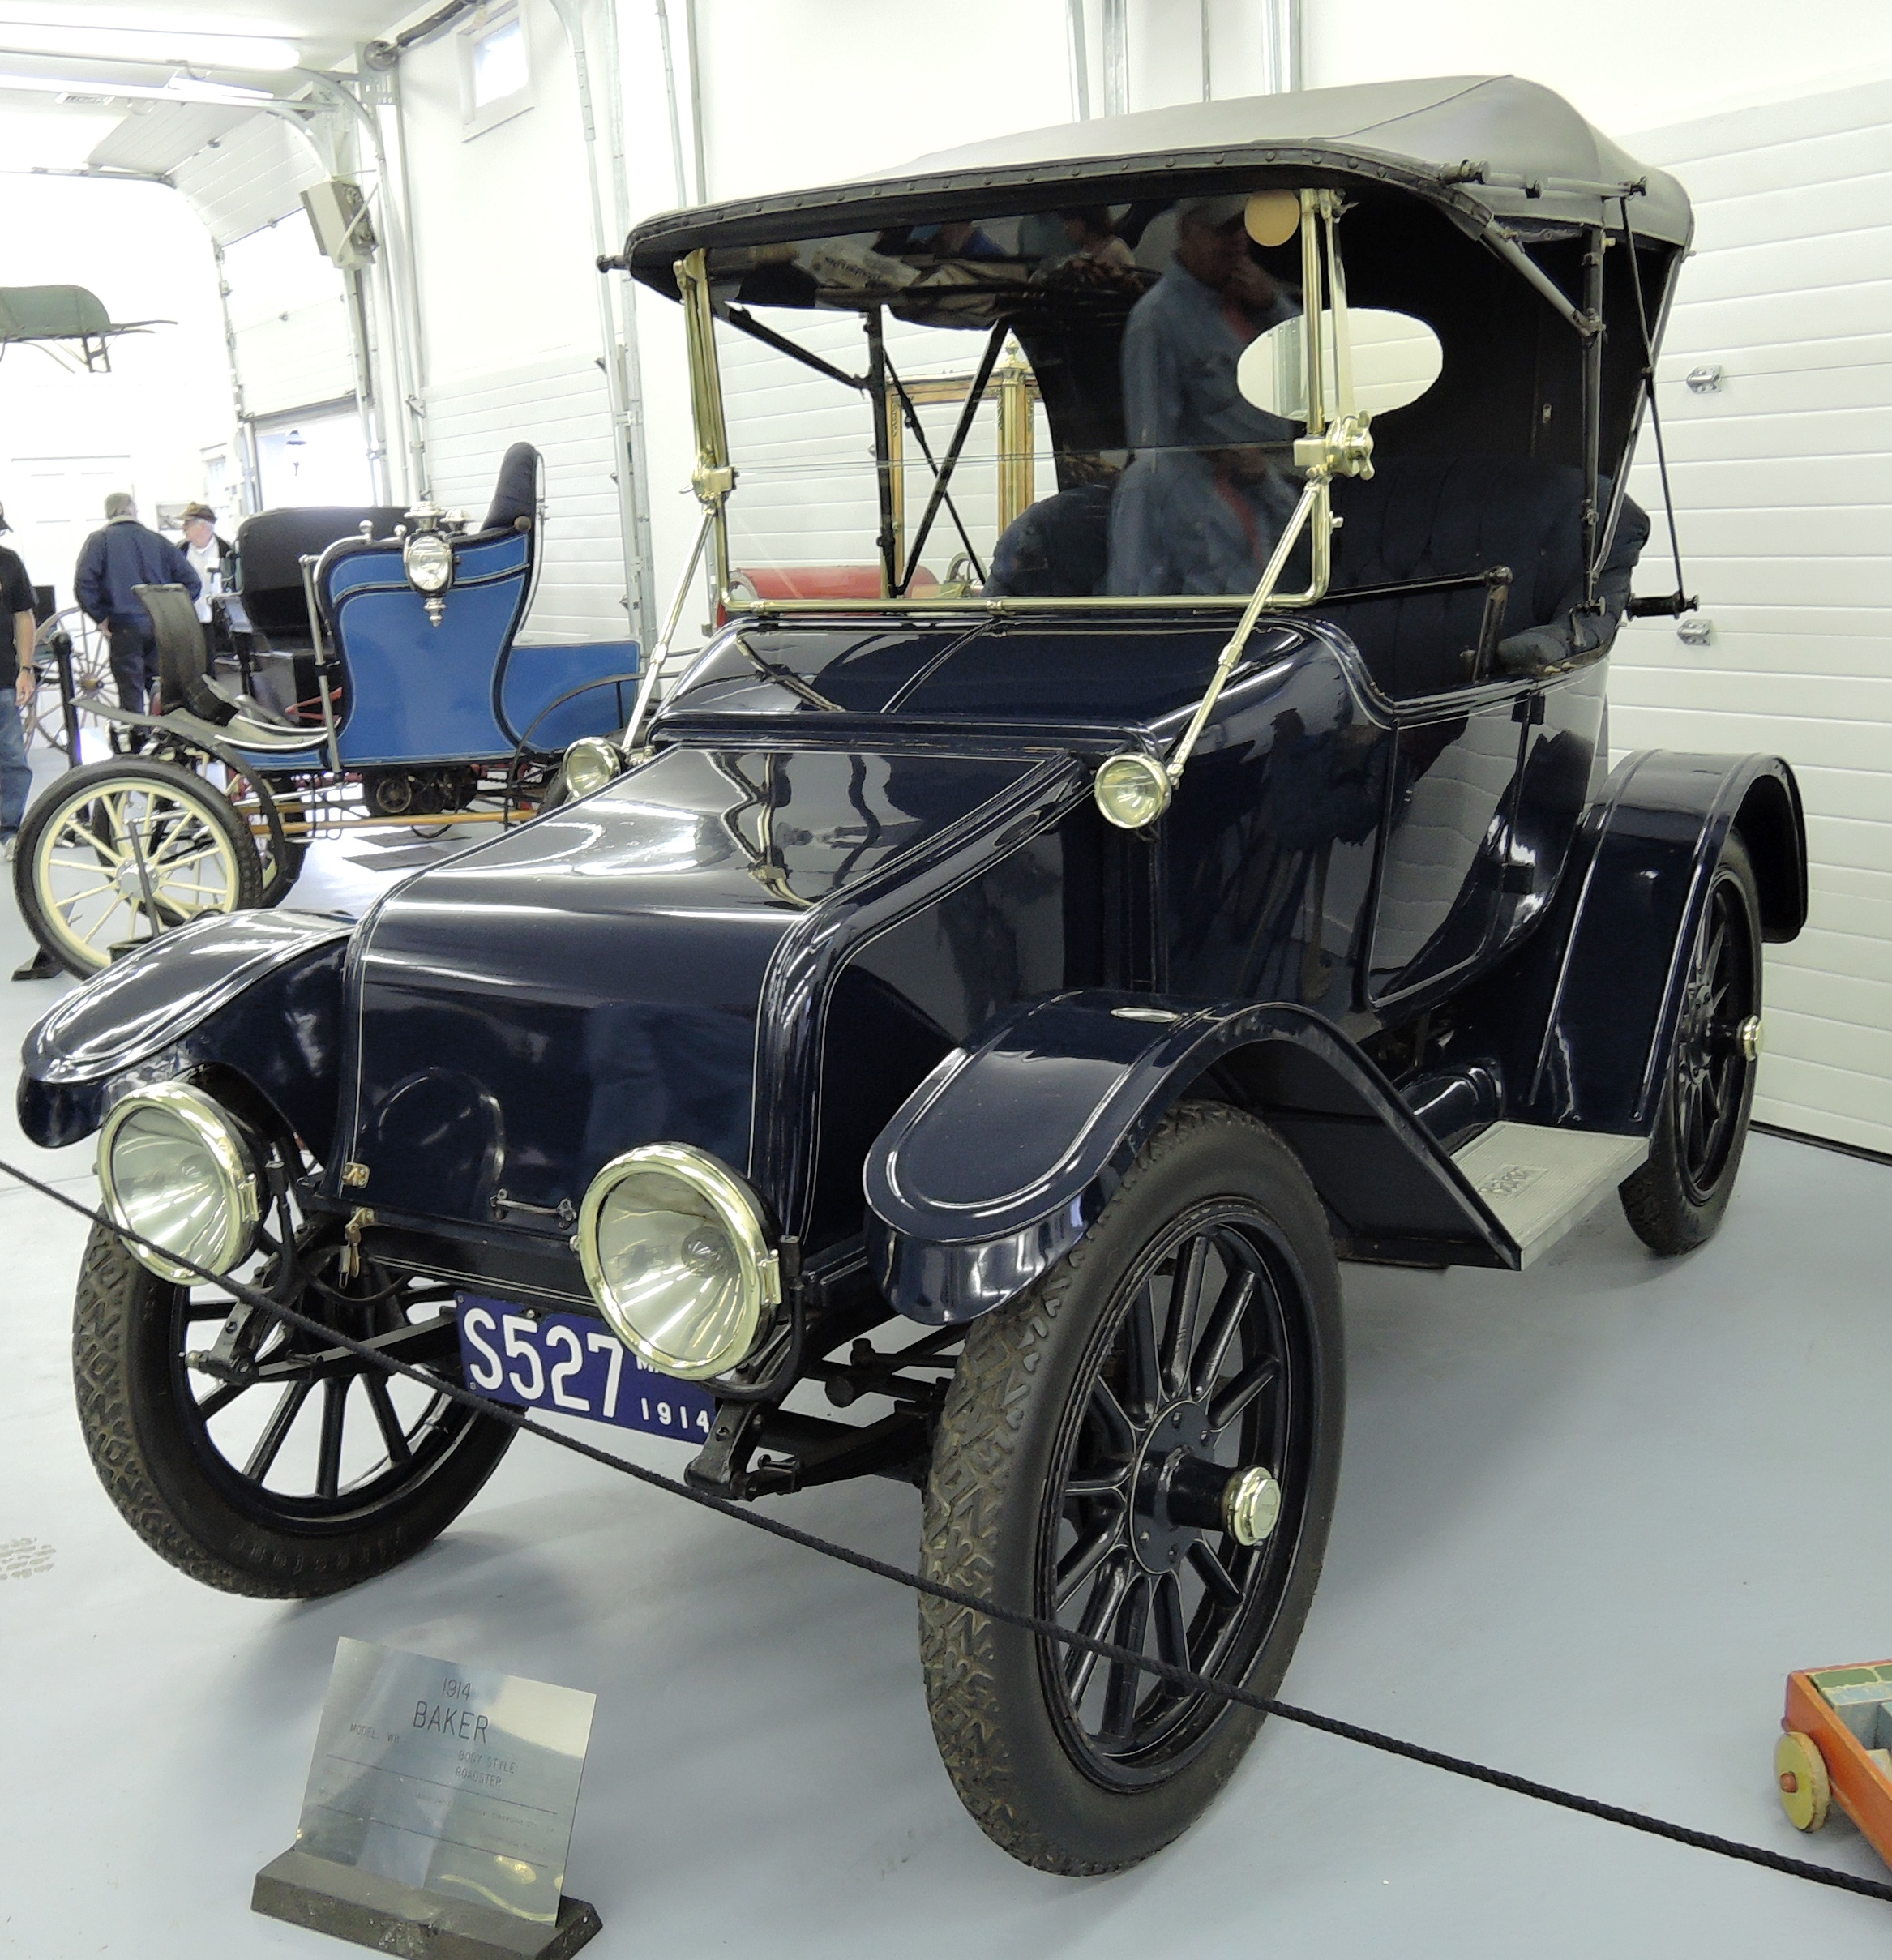 blue 1914 Baker WB Roadster body and chassis manufactured in Cleveland OH, 48 volt General Electric motor made in Schenectady, NY - bahre car collection